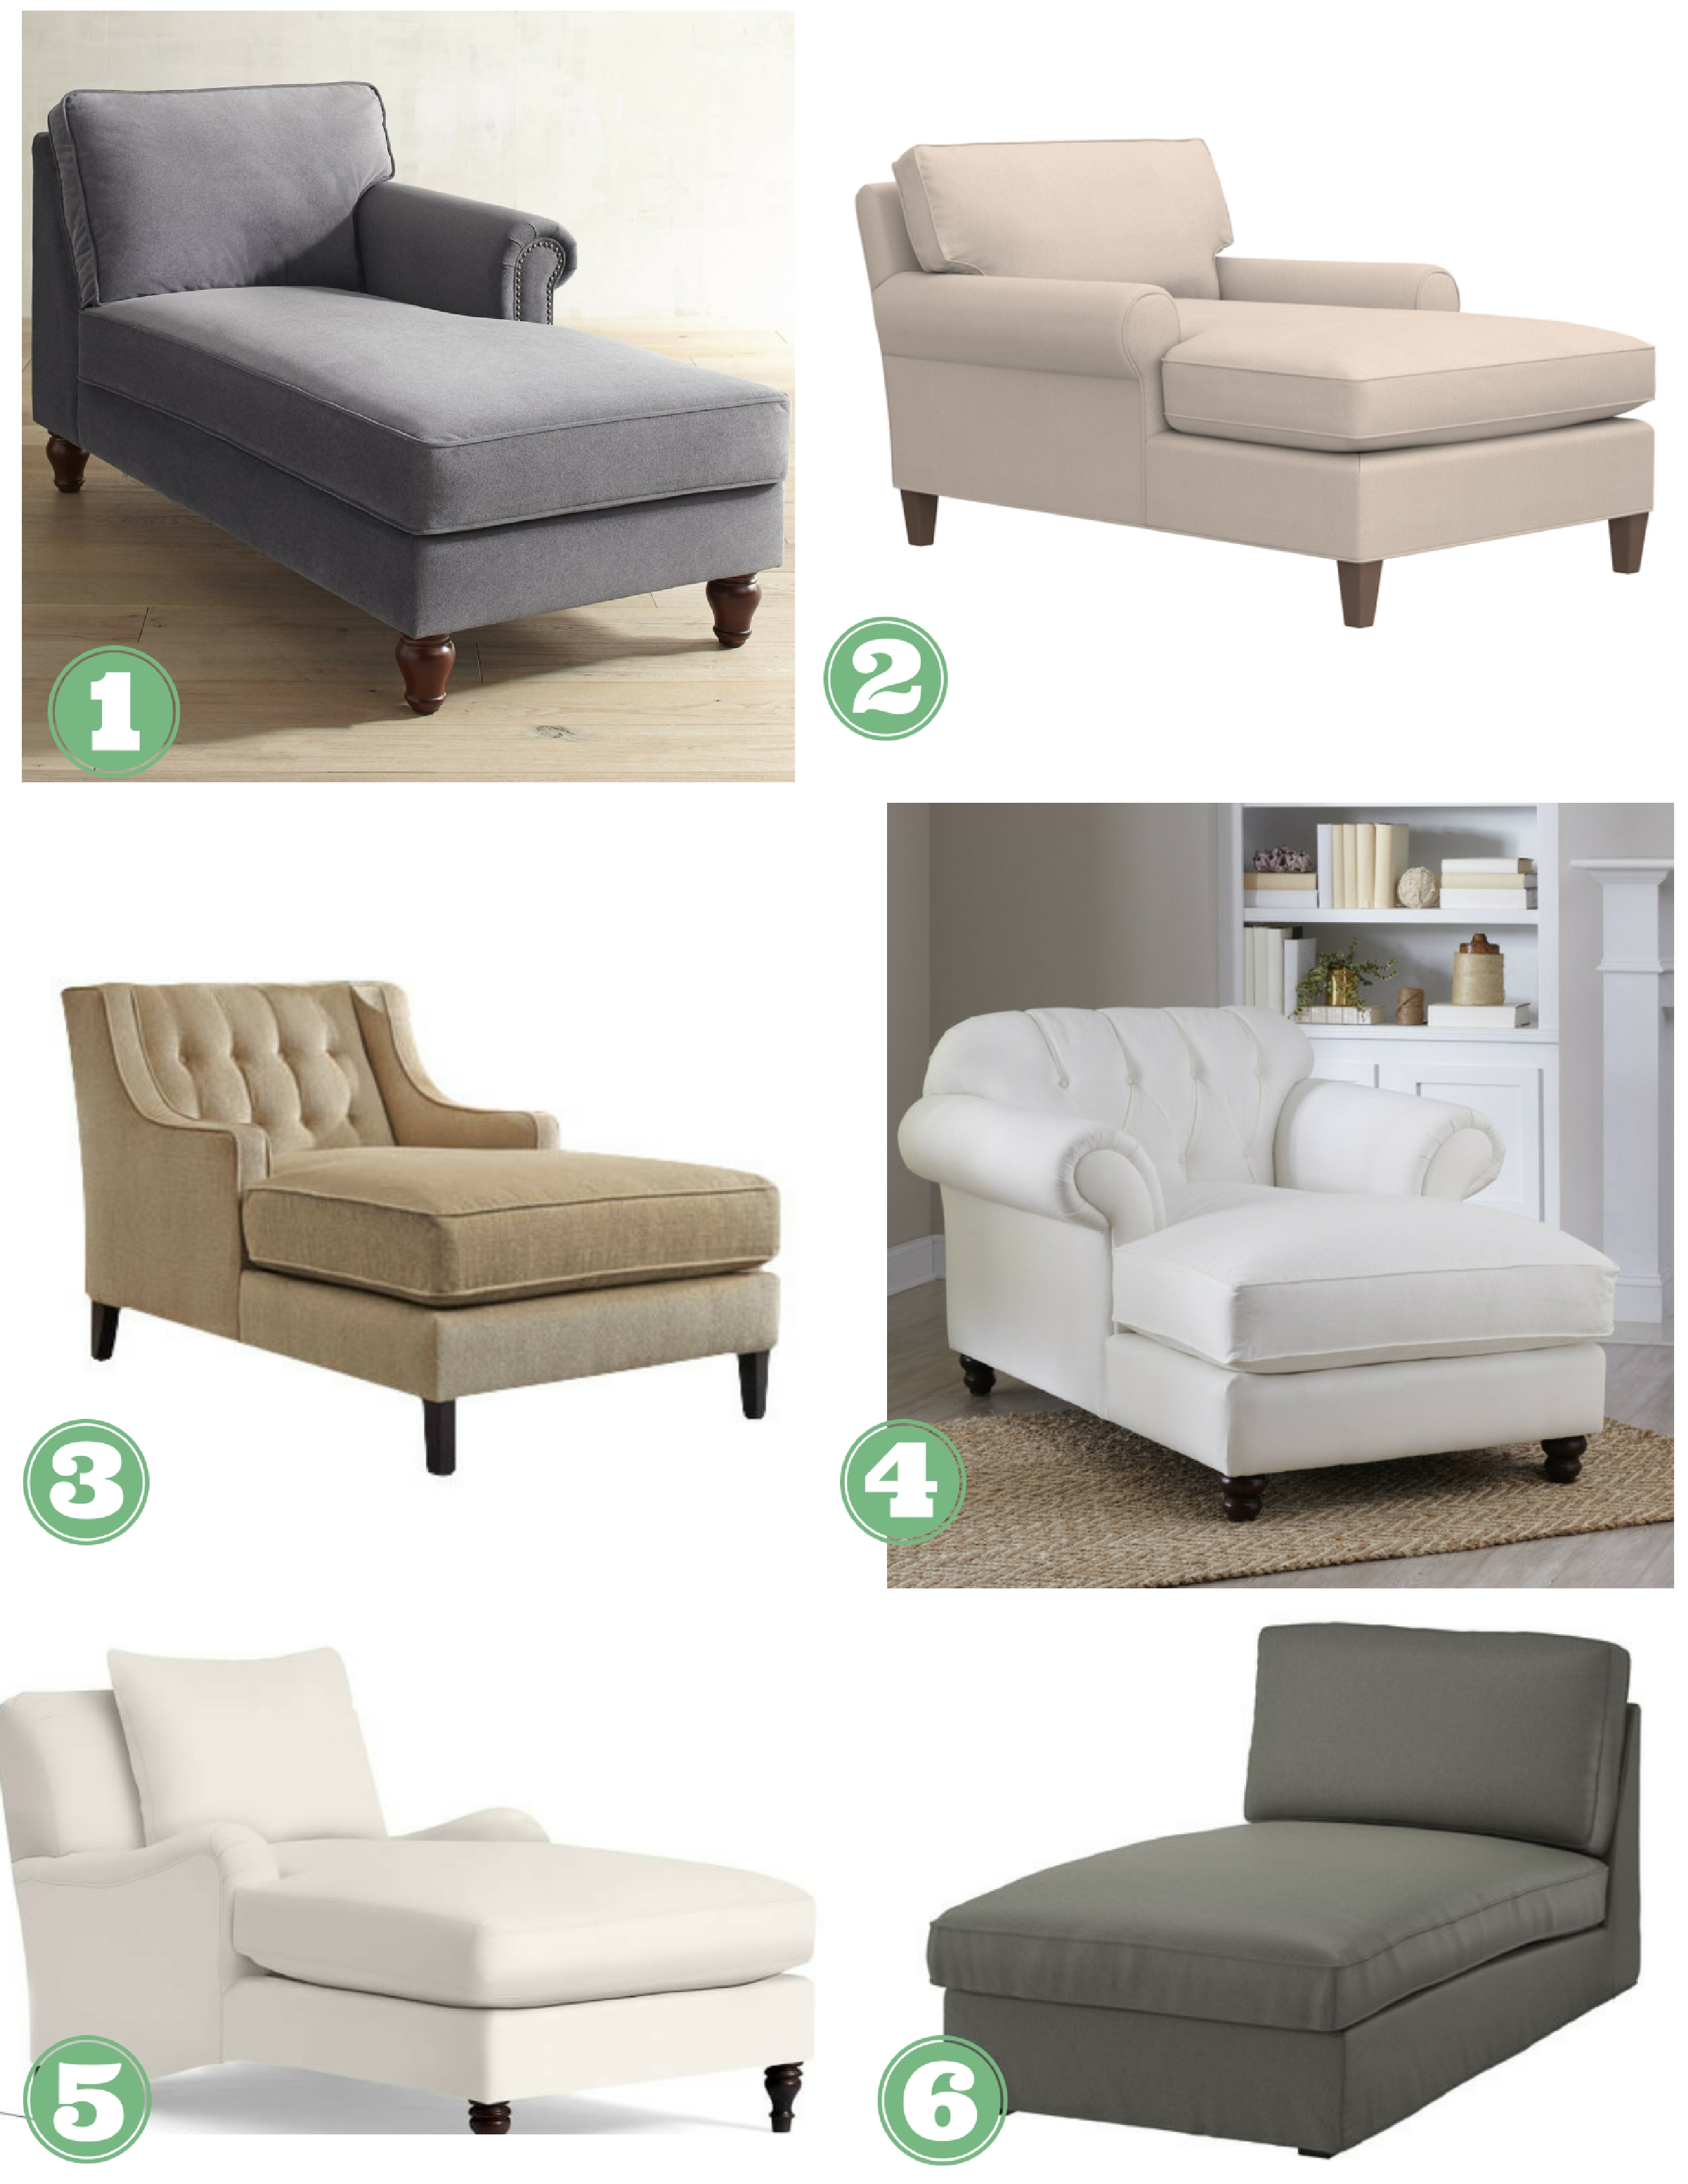 Marvelous Design Inspiration The Chaise Lounge Confettistyle Alphanode Cool Chair Designs And Ideas Alphanodeonline